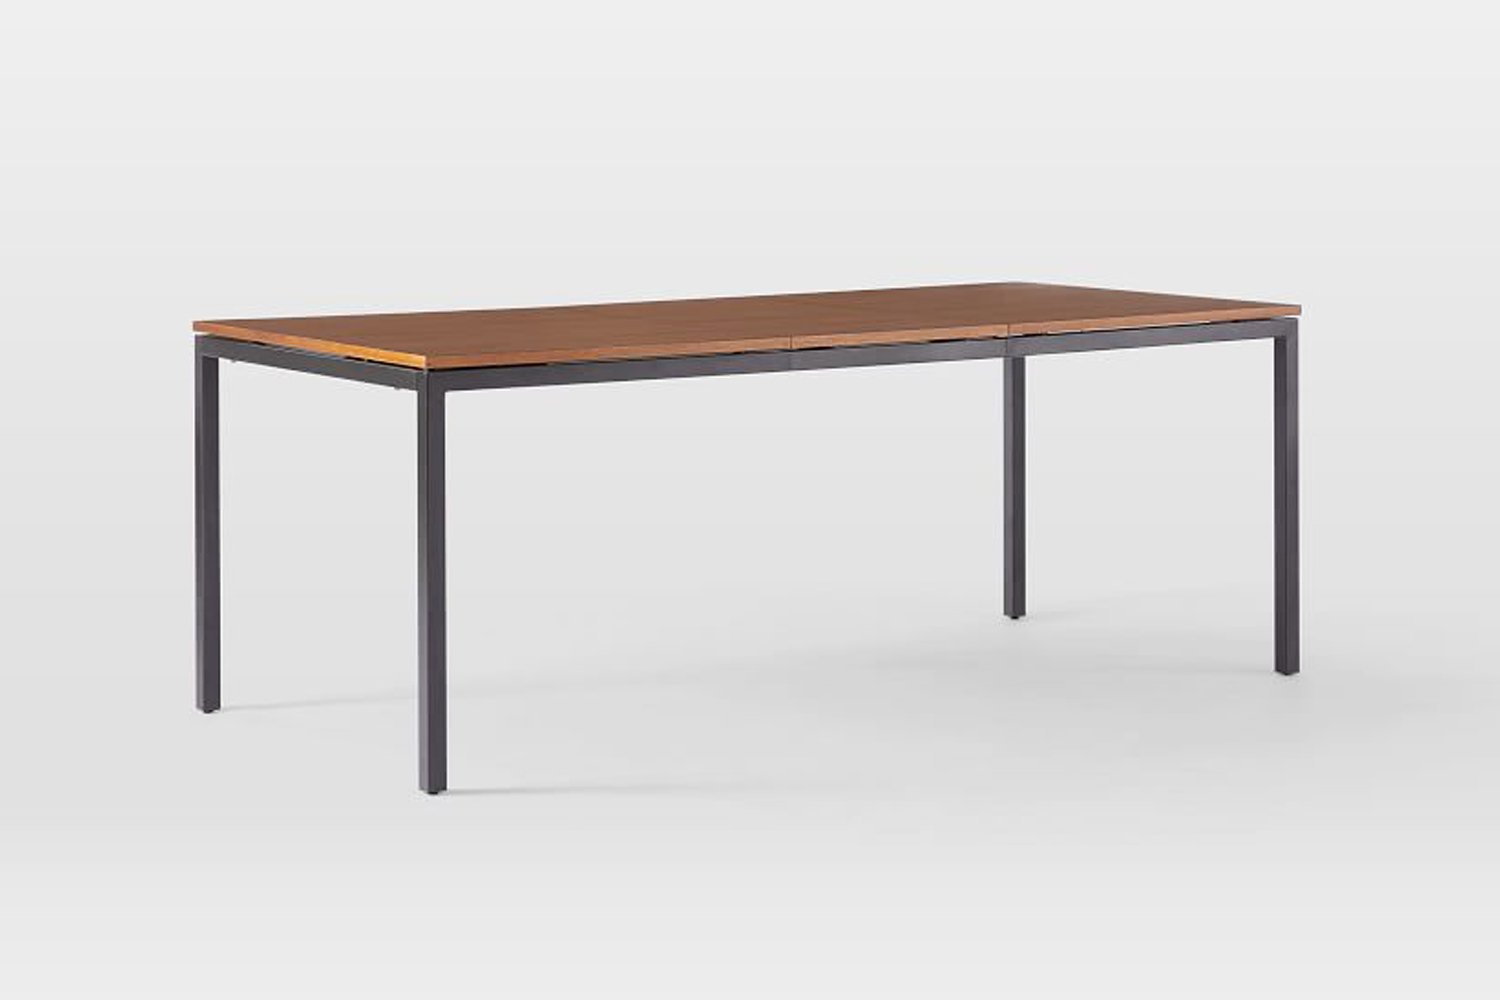 the west elm frame expandable dining table sits on an antique brass or antique  14